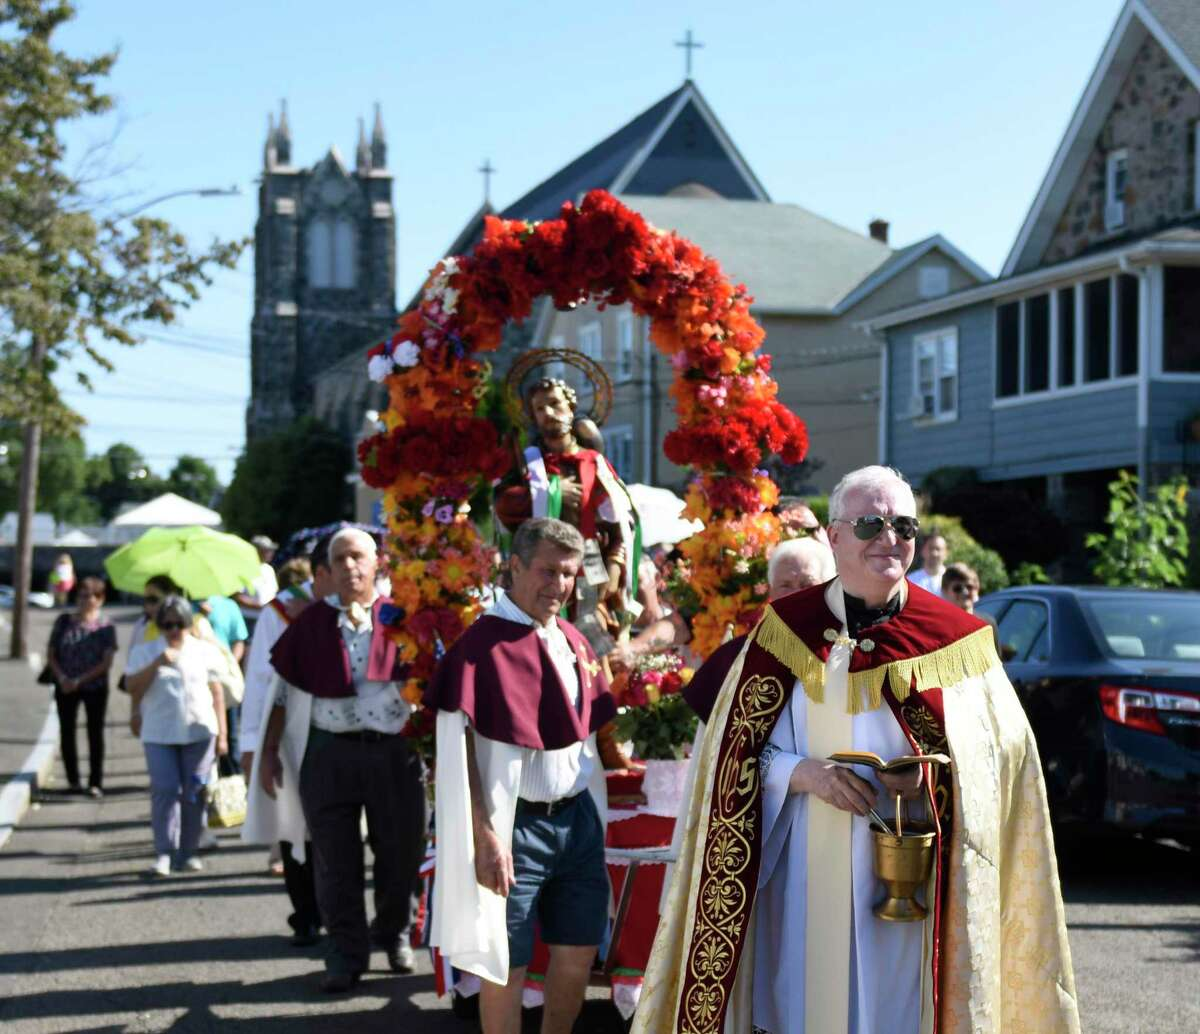 The Rev. Carl McIntosh leads the 110th annual St. Roch Church procession through the streets in the Chickahominy section of Greenwich, Conn. Sunday, Aug. 11, 2019. To close out the Feast, the church paid tribute to St. Roch with a procession featuring a statue of St. Roch and music from the Dixie Dandies. Onlookers crowded the streets and pinned money to ribbons on the statue as the procession made its way through town.